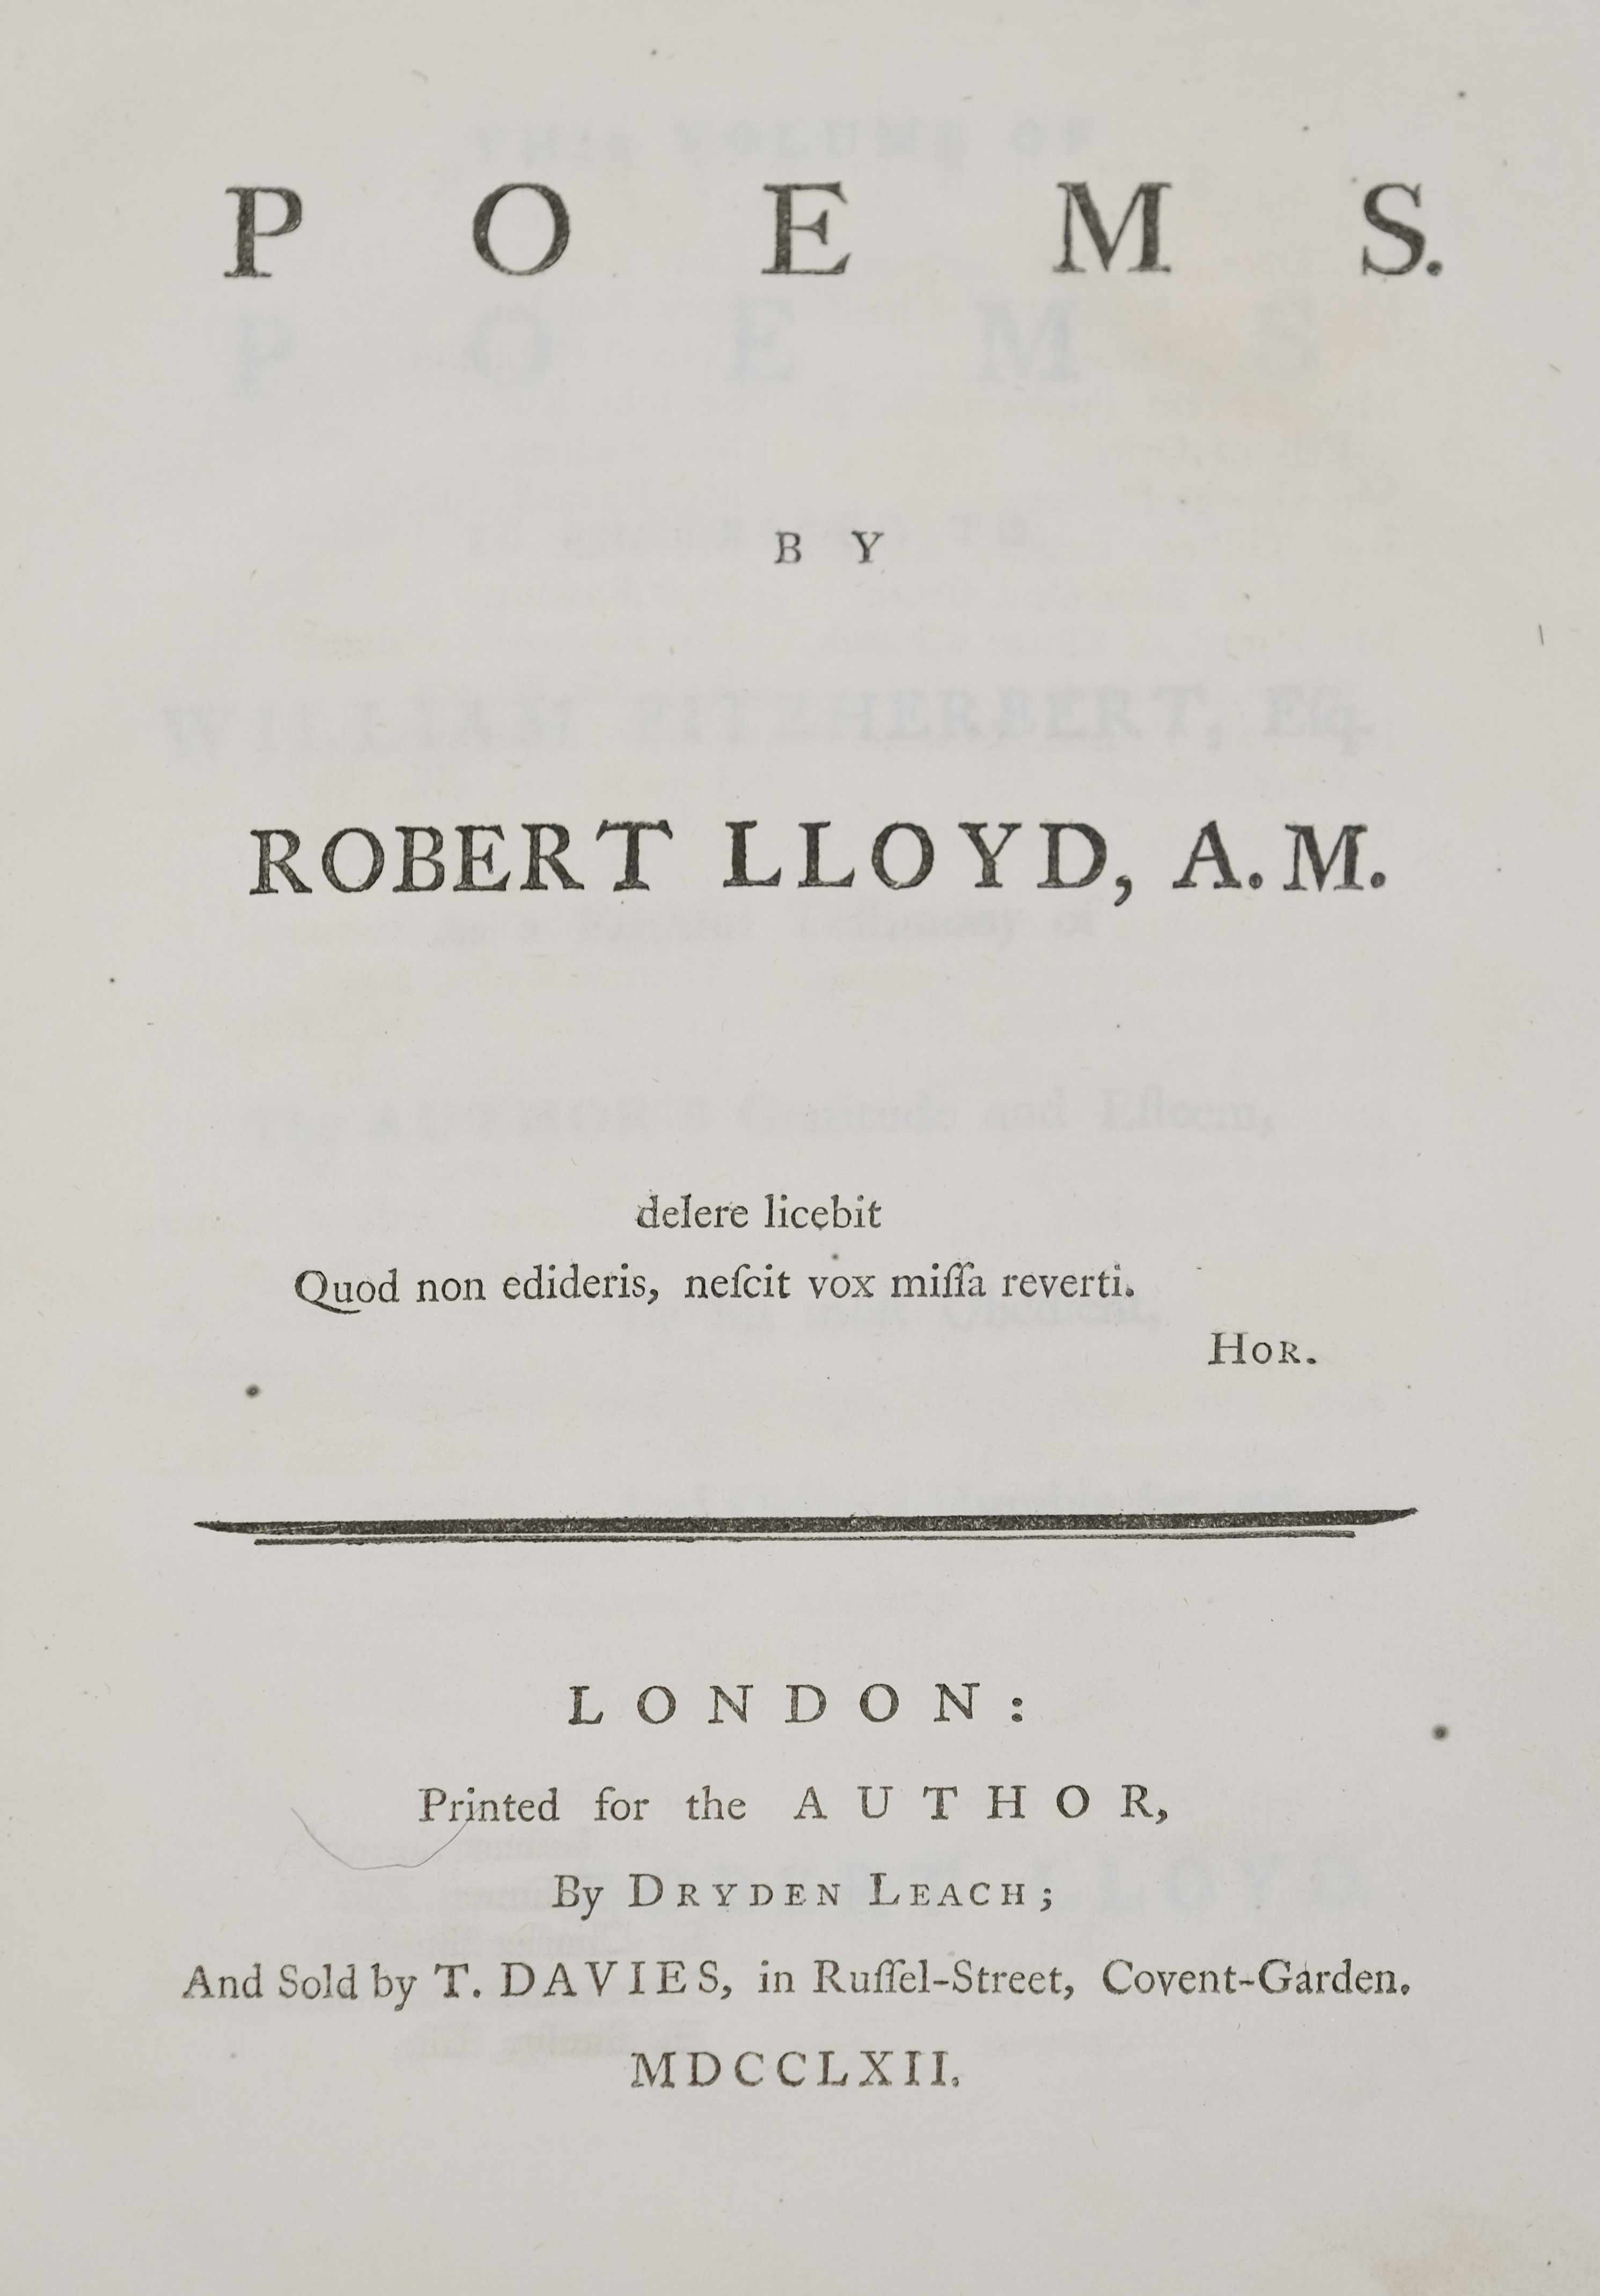 Lloyd (Robert). Poems, London: Printed for the Author, 1762